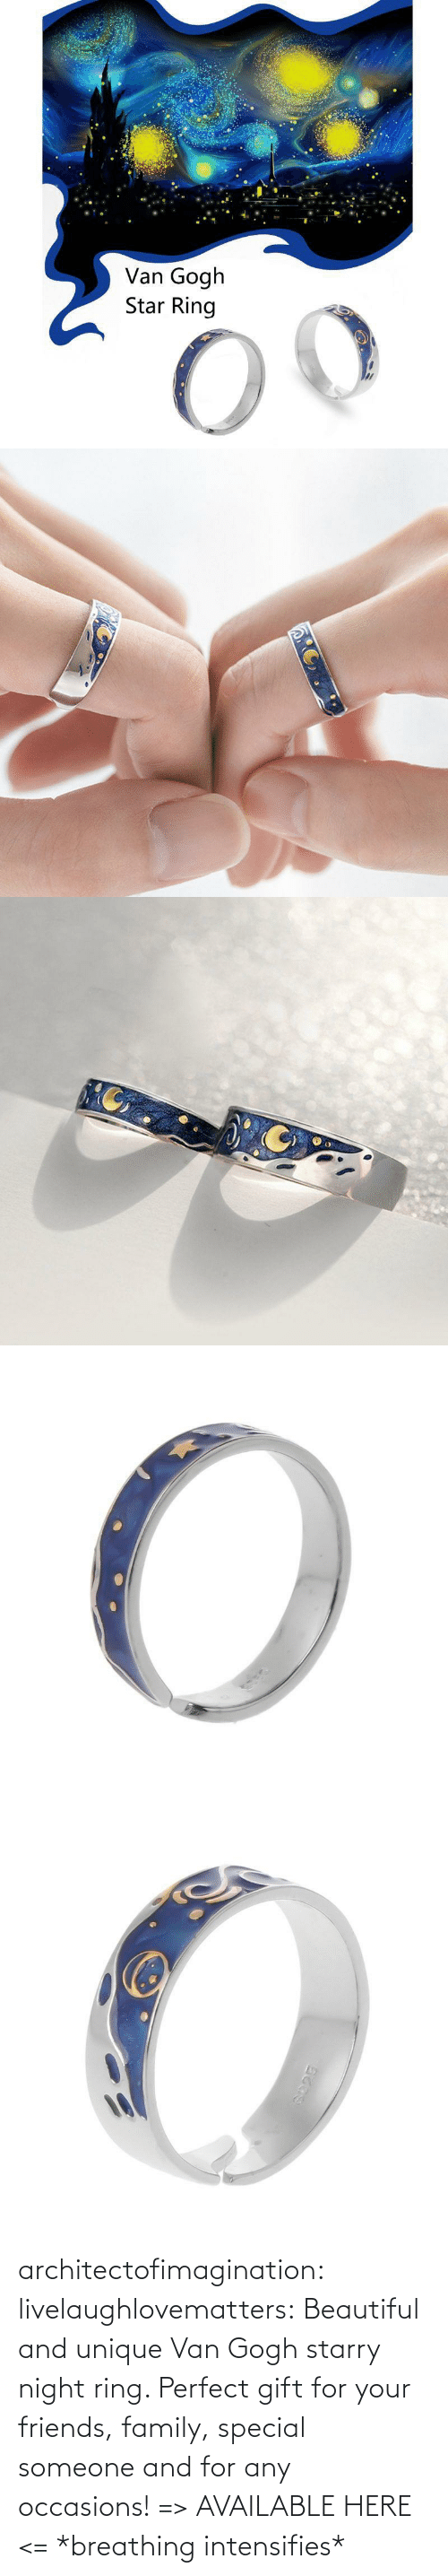 open: architectofimagination:  livelaughlovematters: Beautiful and unique Van Gogh starry night ring. Perfect gift for your friends, family, special someone and for any occasions! => AVAILABLE HERE <=    *breathing intensifies*